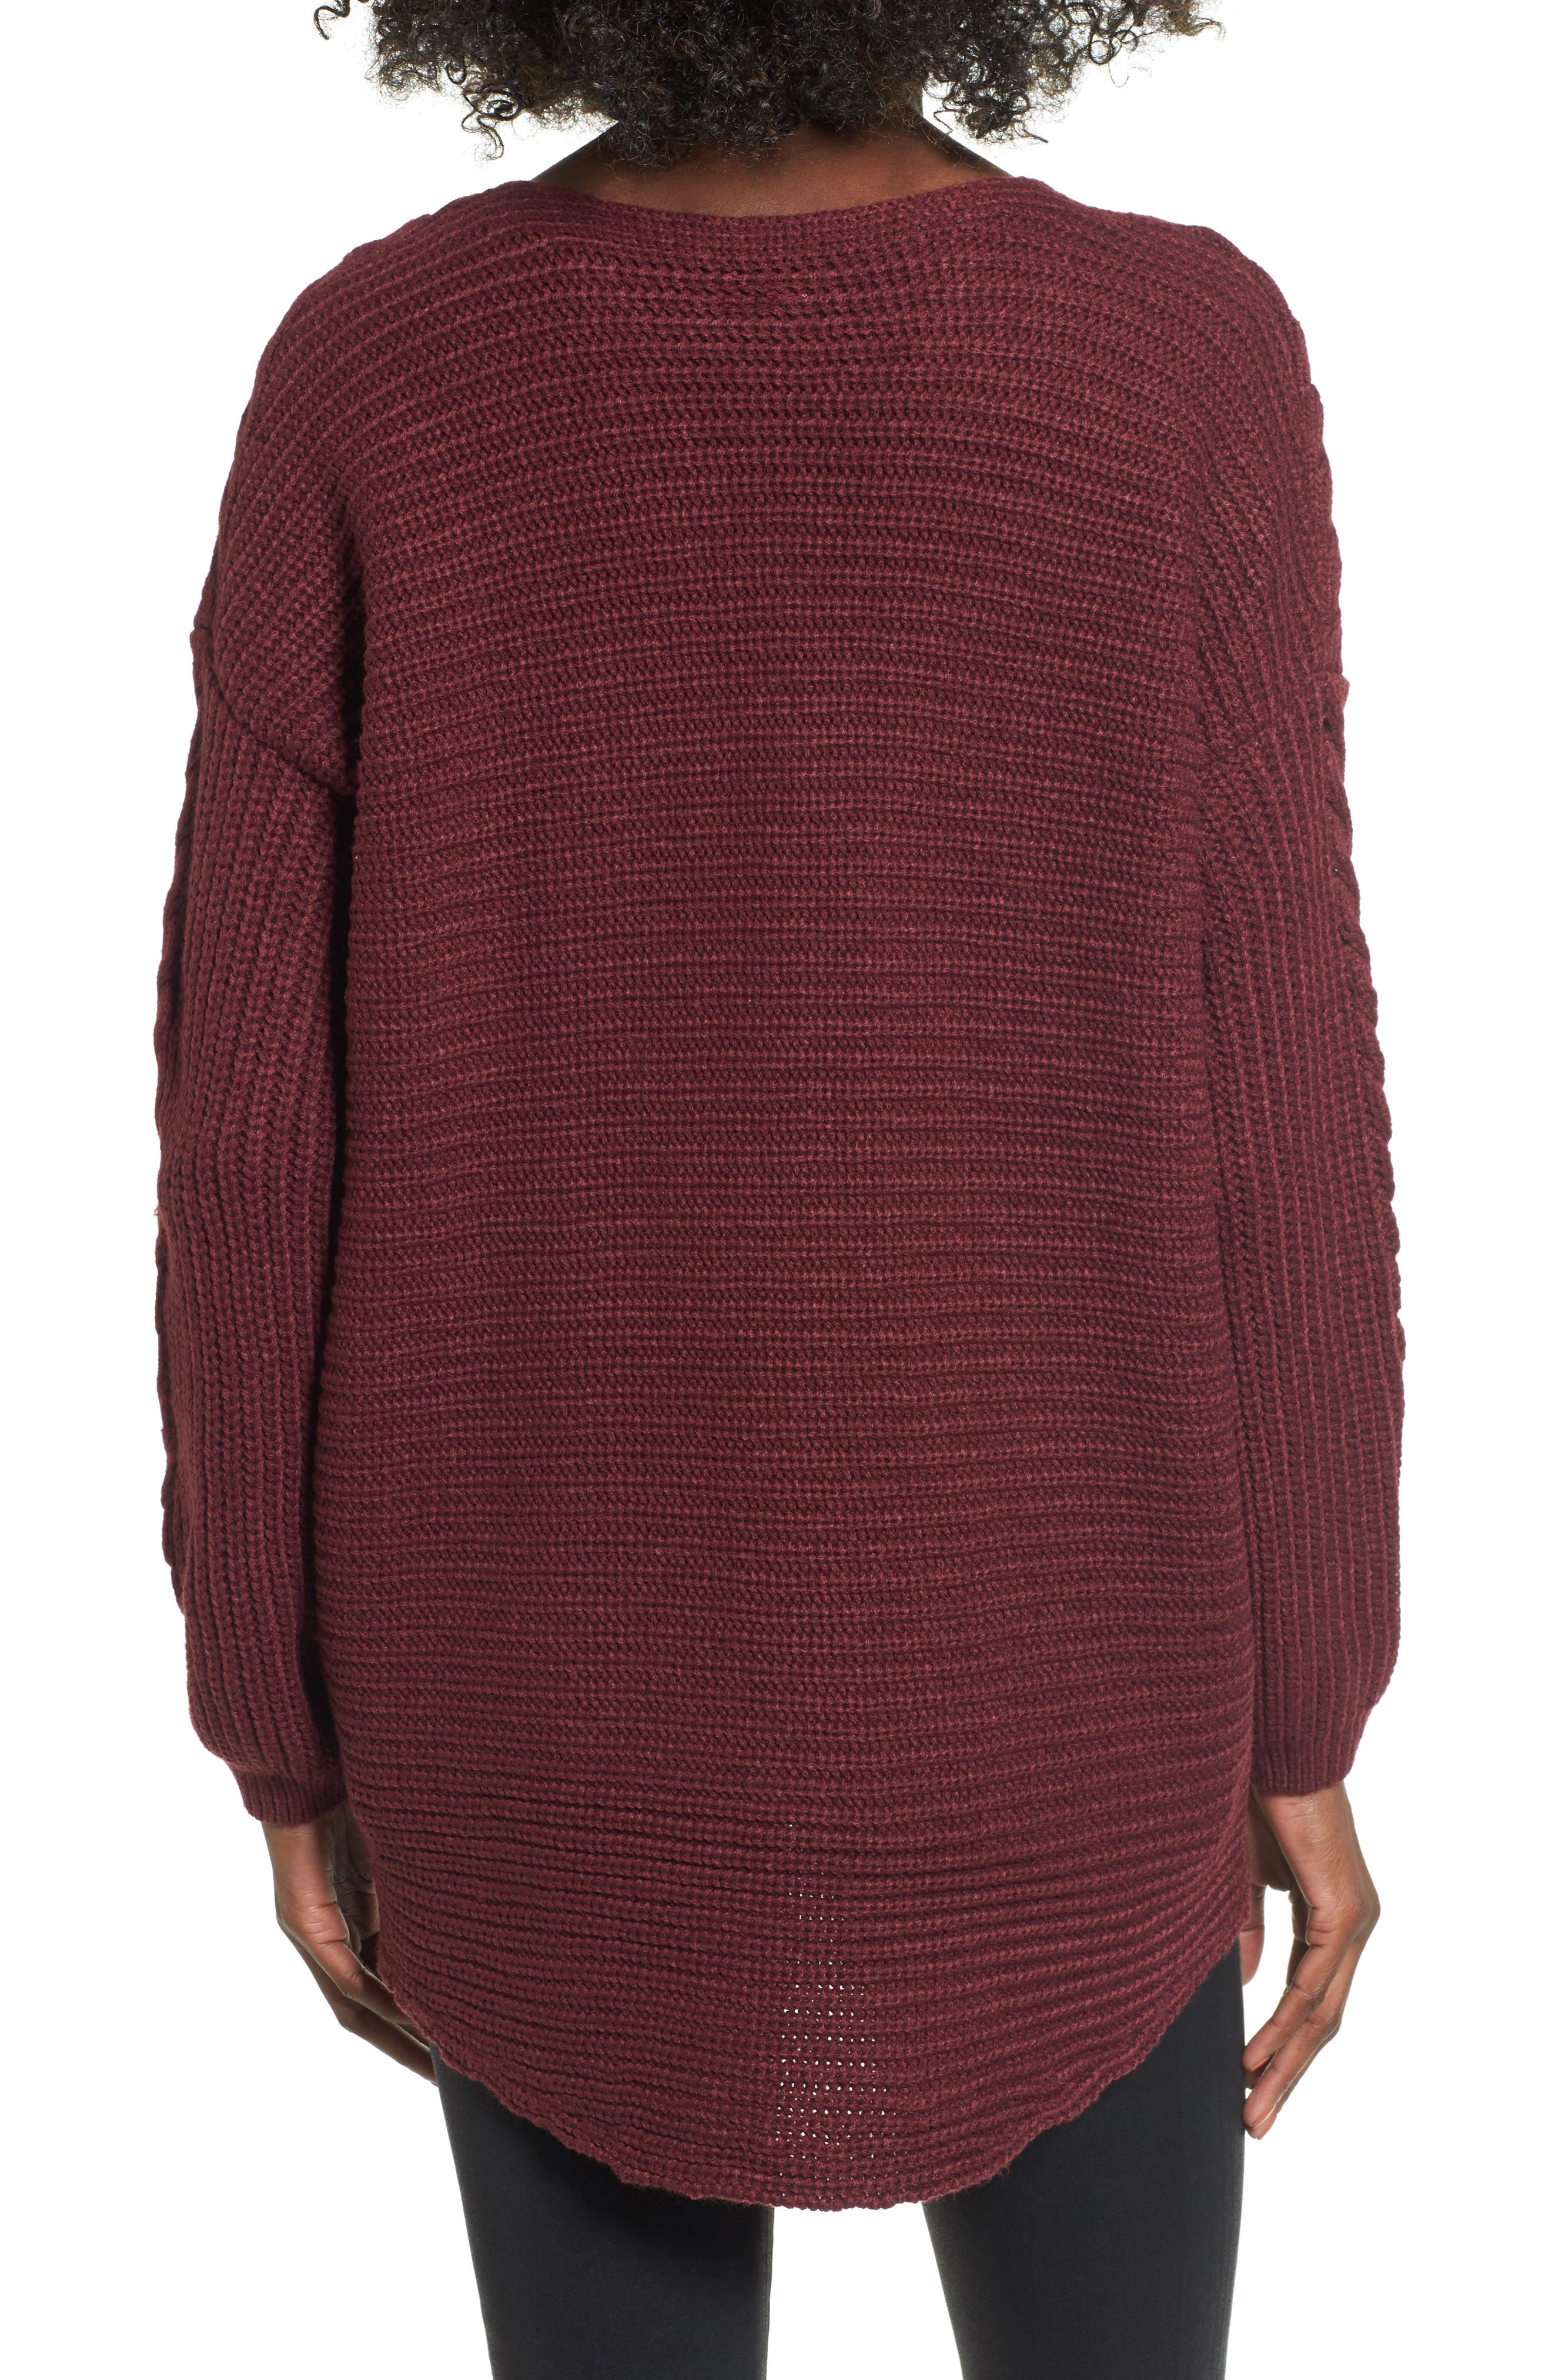 Cross Front Braided Sweater,                             Alternate thumbnail 2, color,                             Zinfandel